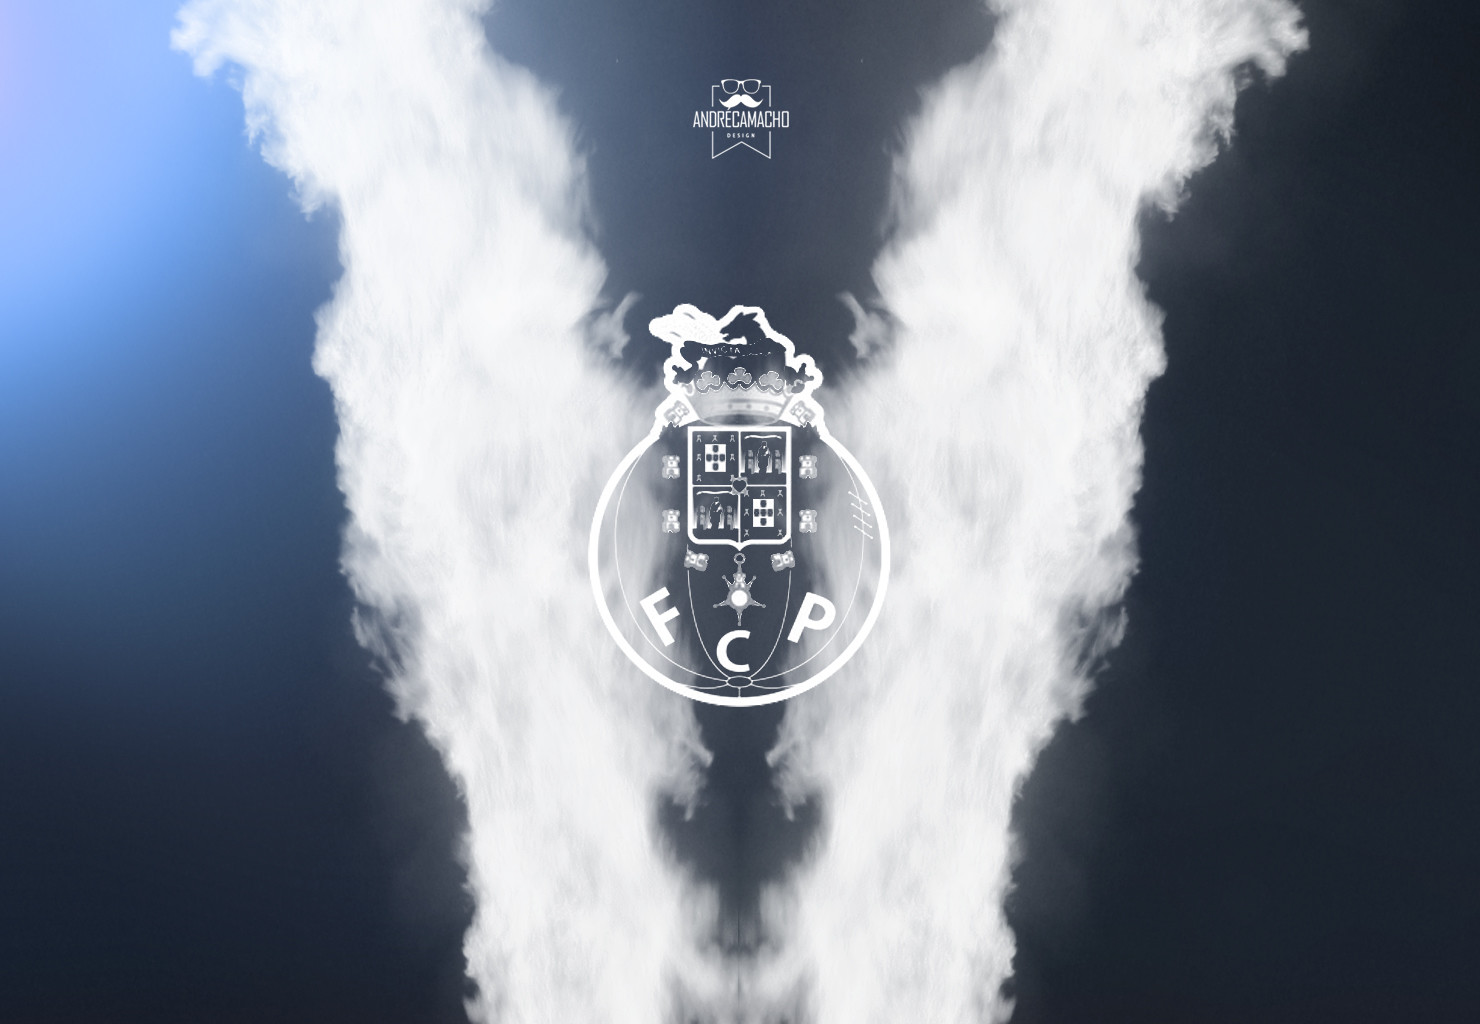 Andre camacho design fcporto wallpaper1